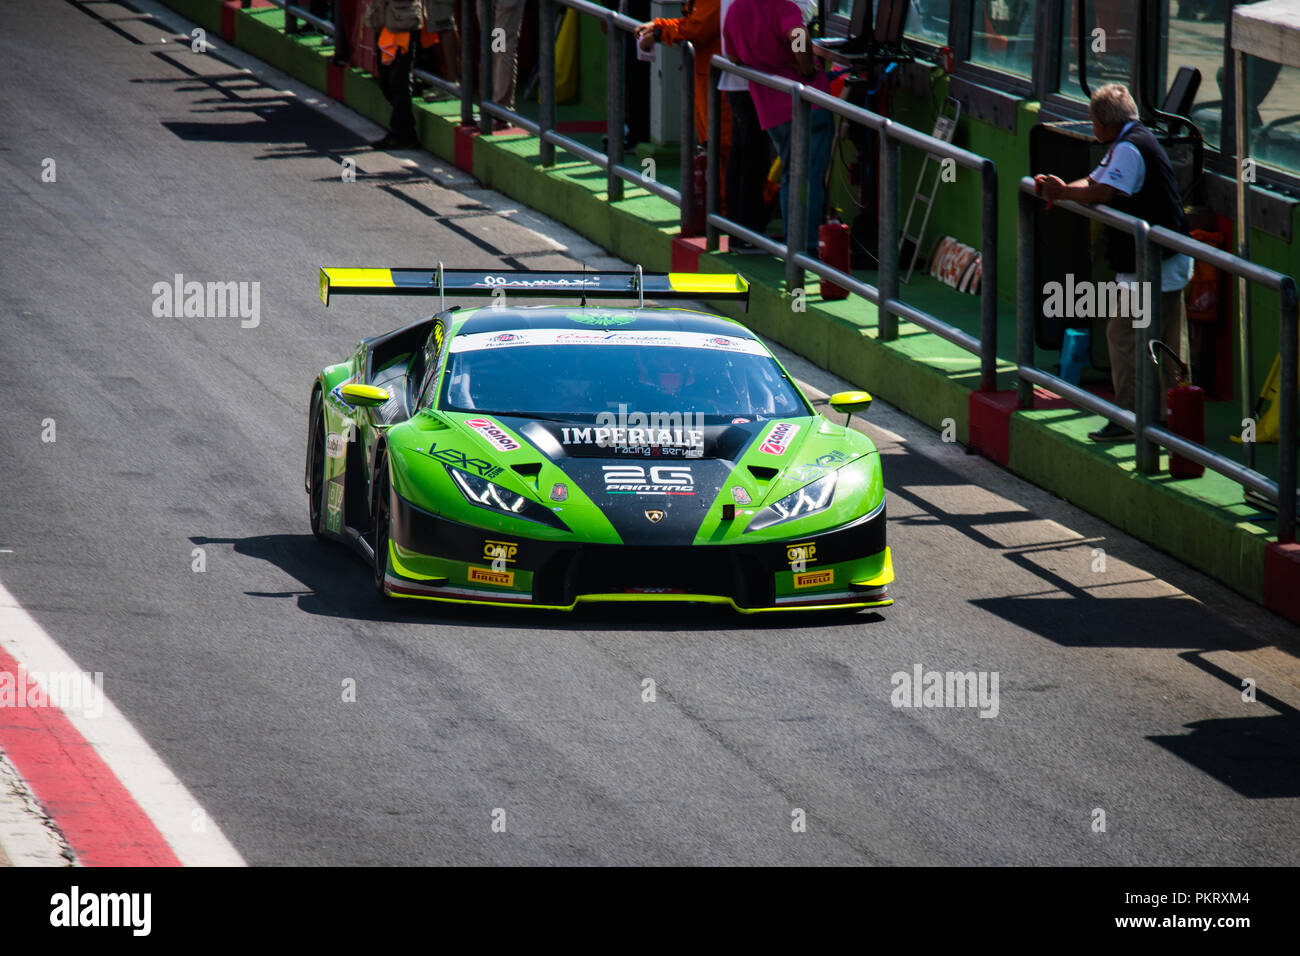 High angle view full length of Lamborghini touring car in racing circuit pit lane - Stock Image